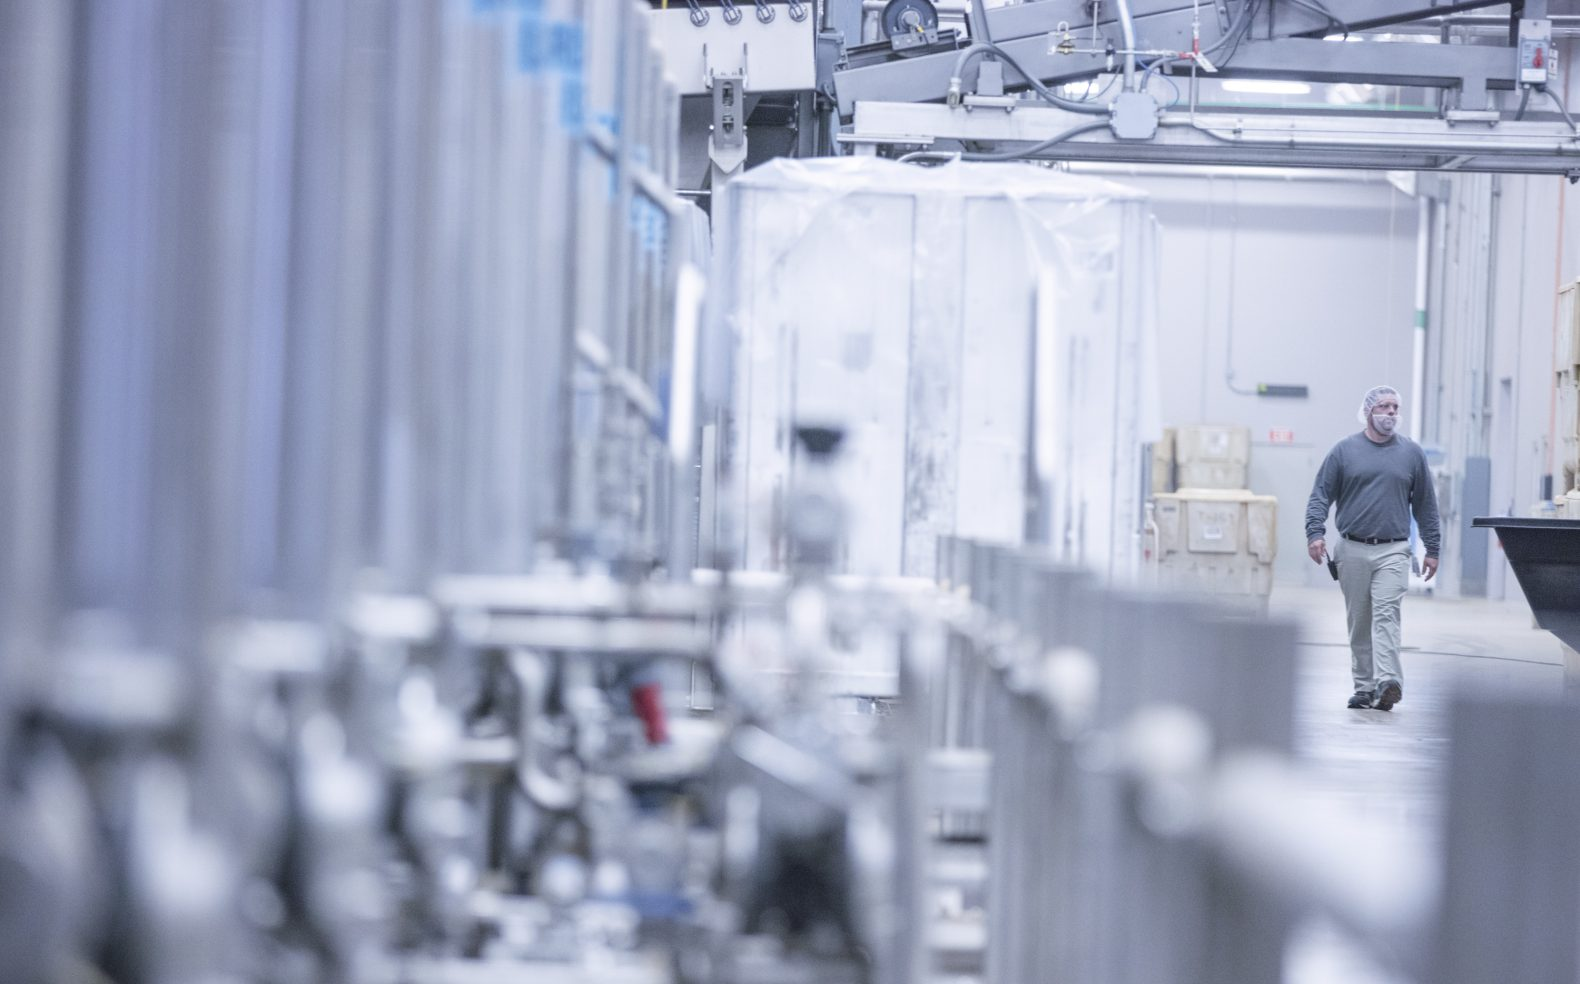 Professional photograph of a manufacturing employee walking through a facility with metal machinery